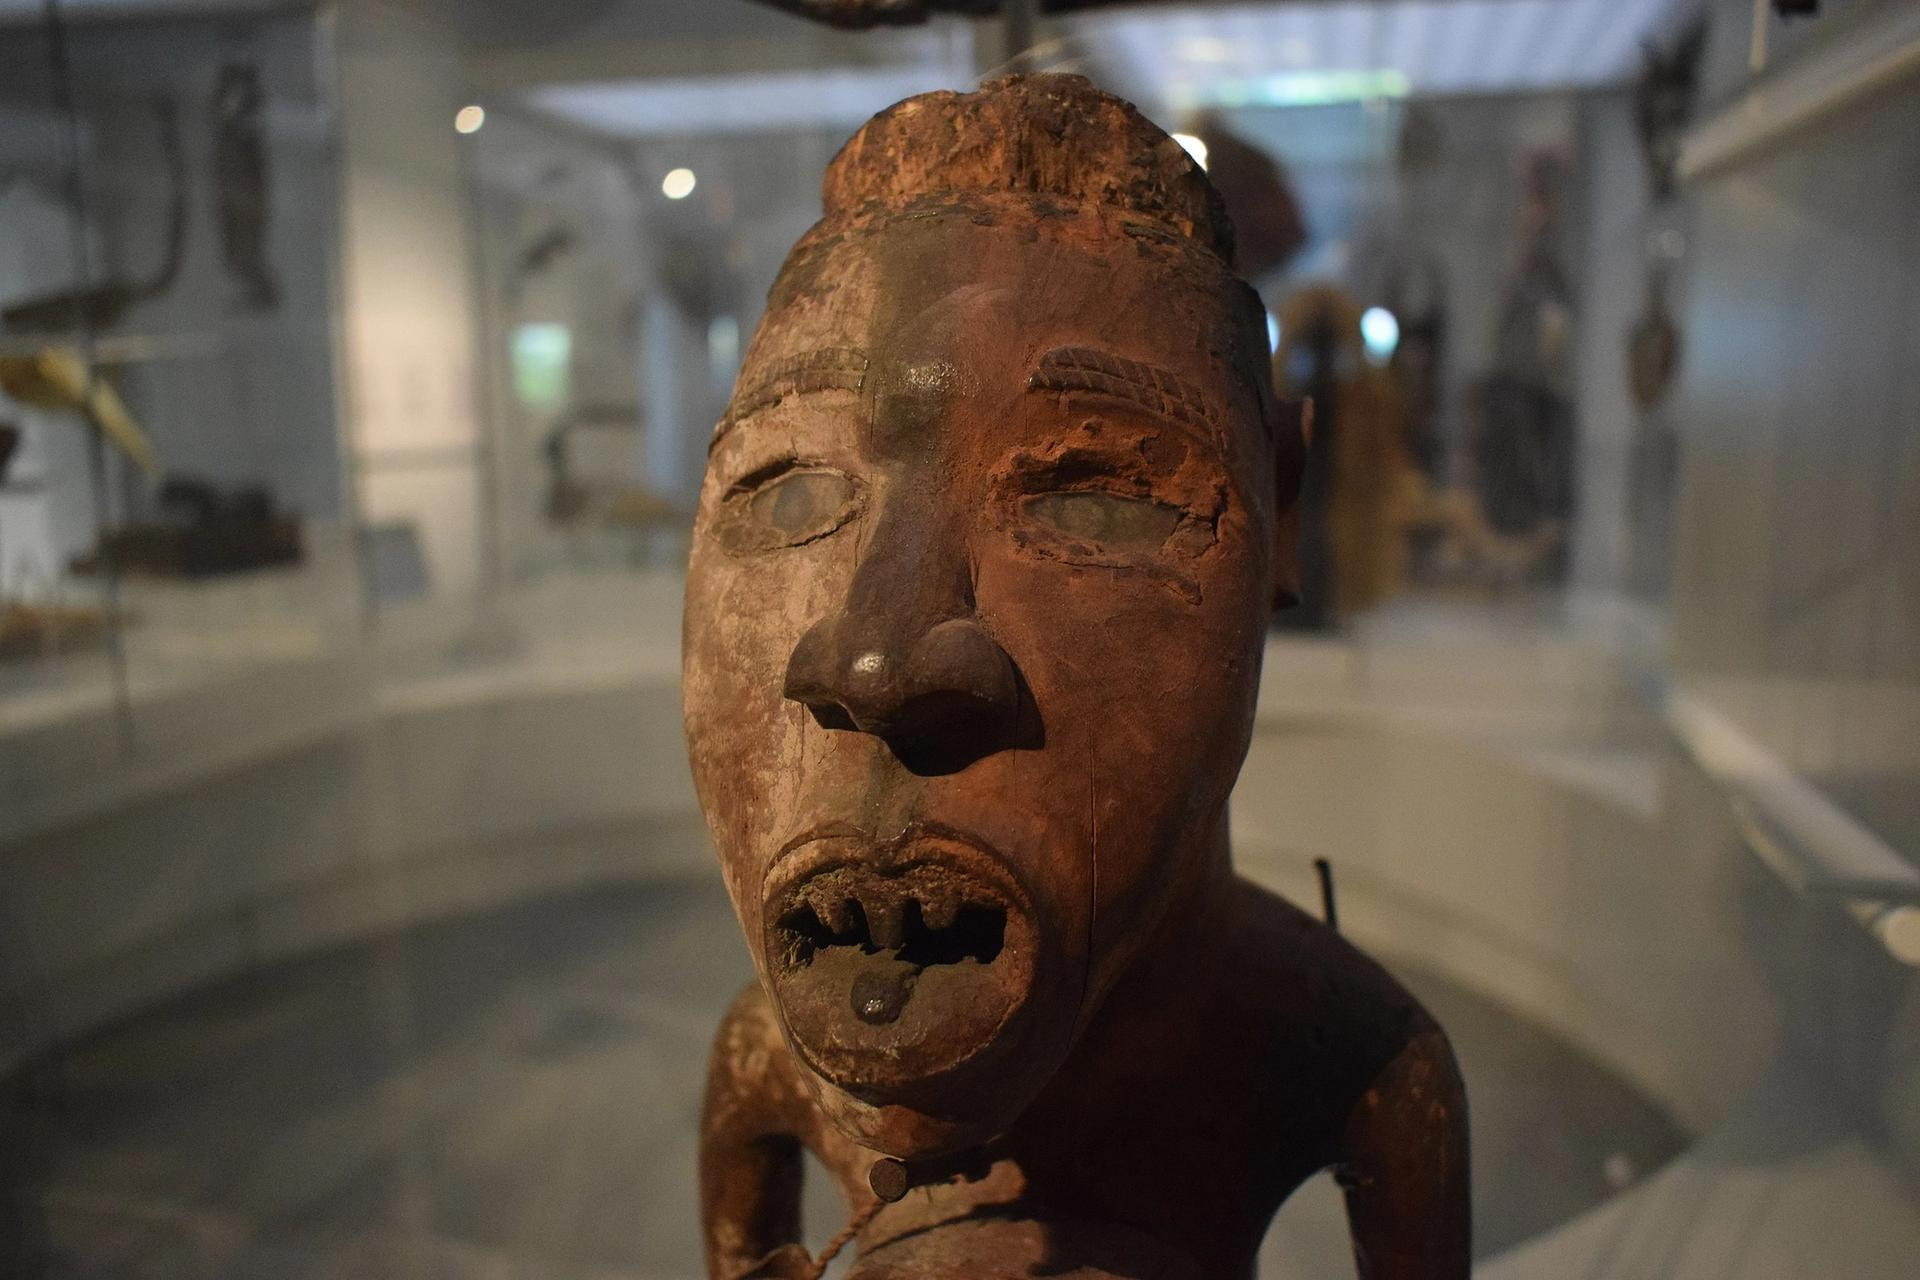 The Royal Museum of Central Africa at Tervuren has the largest collection of objects acquired in a colonial context